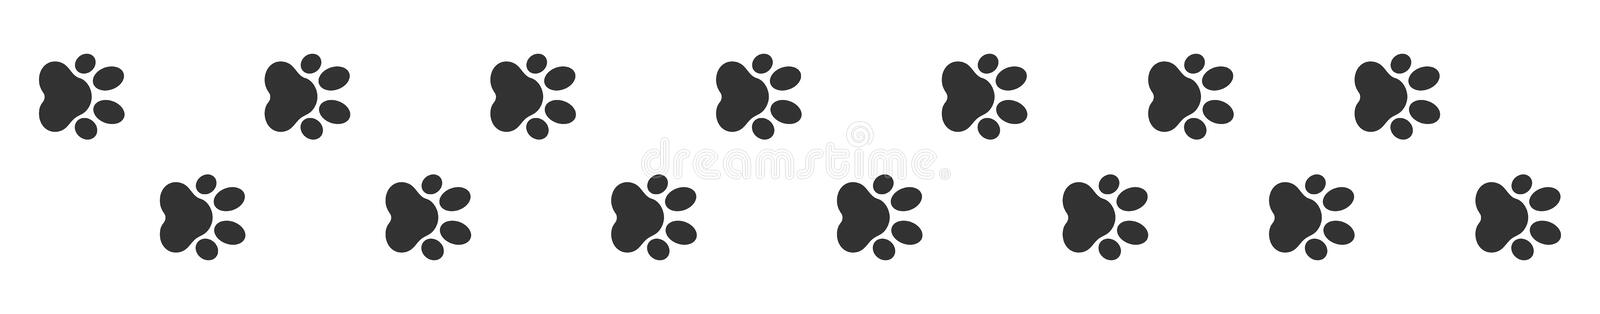 Paw Print Ejemplo del vector, animal de Paw Print libre illustration